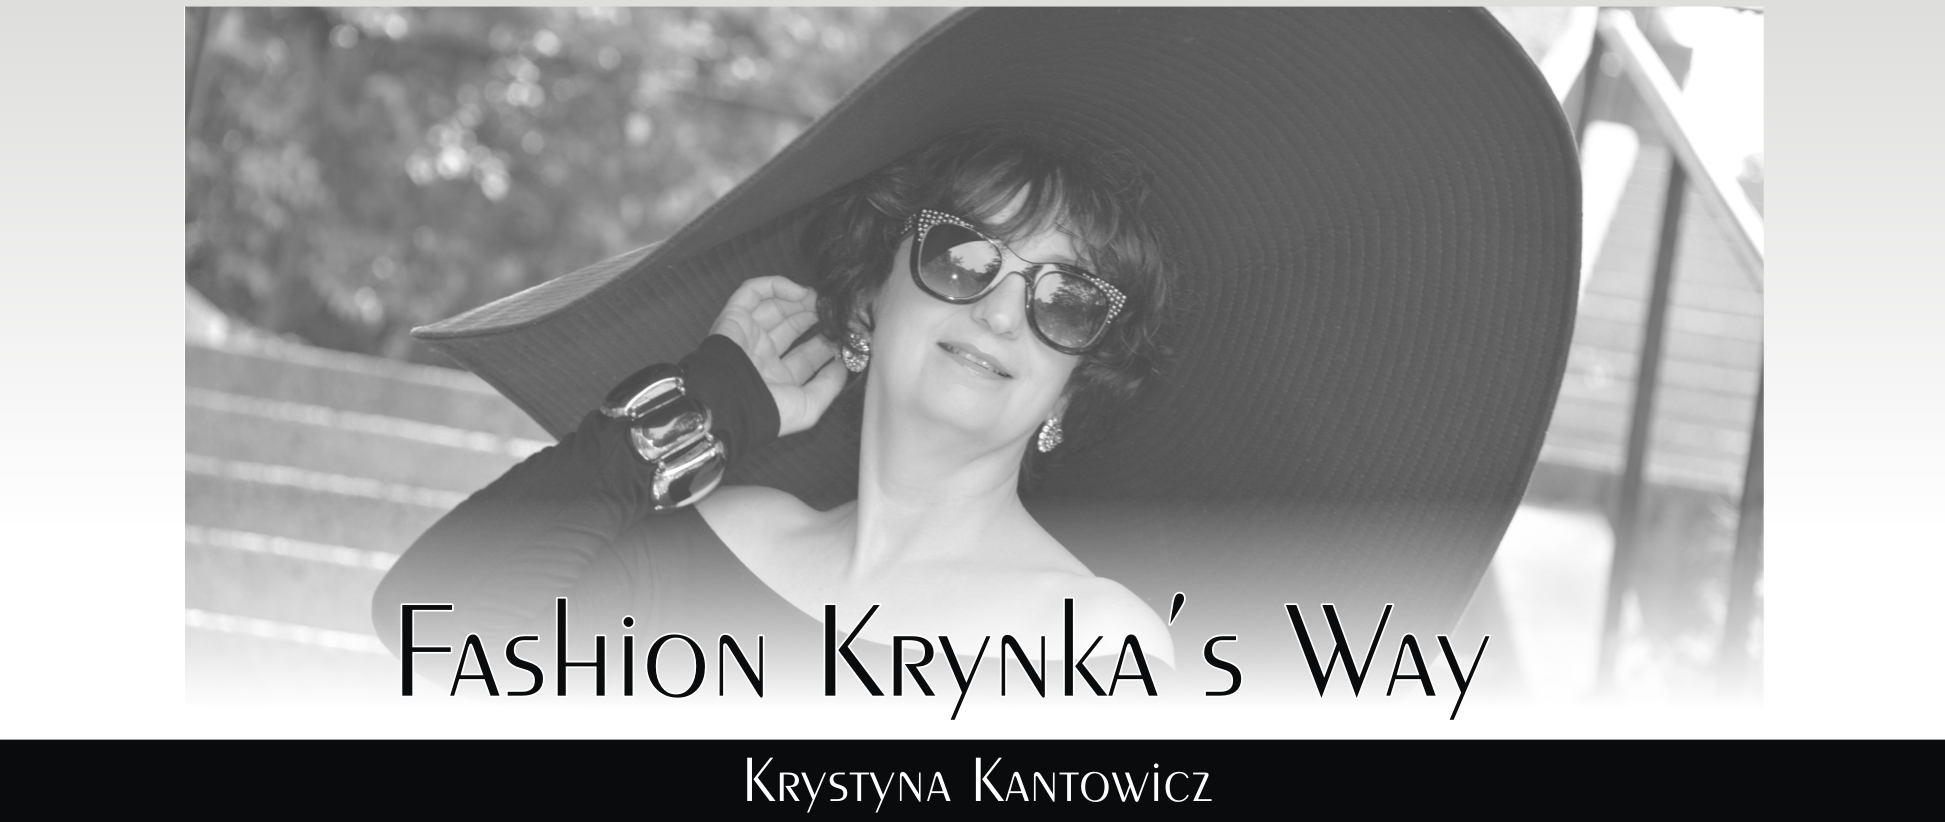 Fashion Krynka's Way